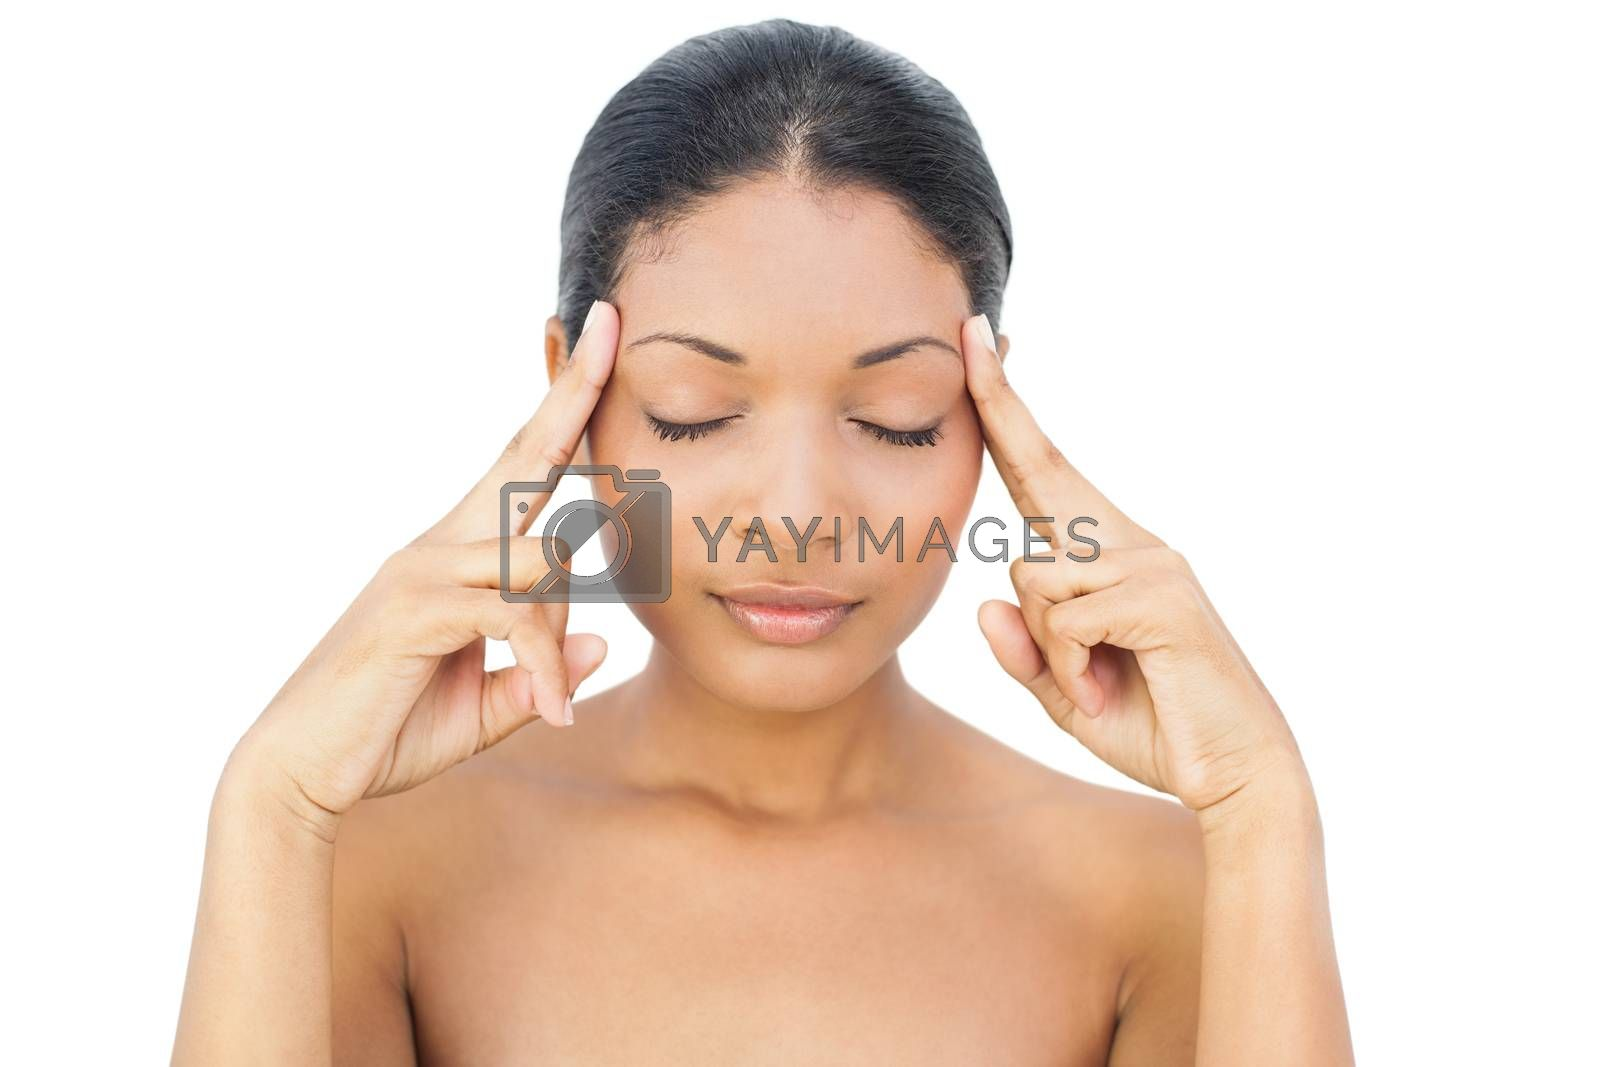 Black haired model on white background having a headache